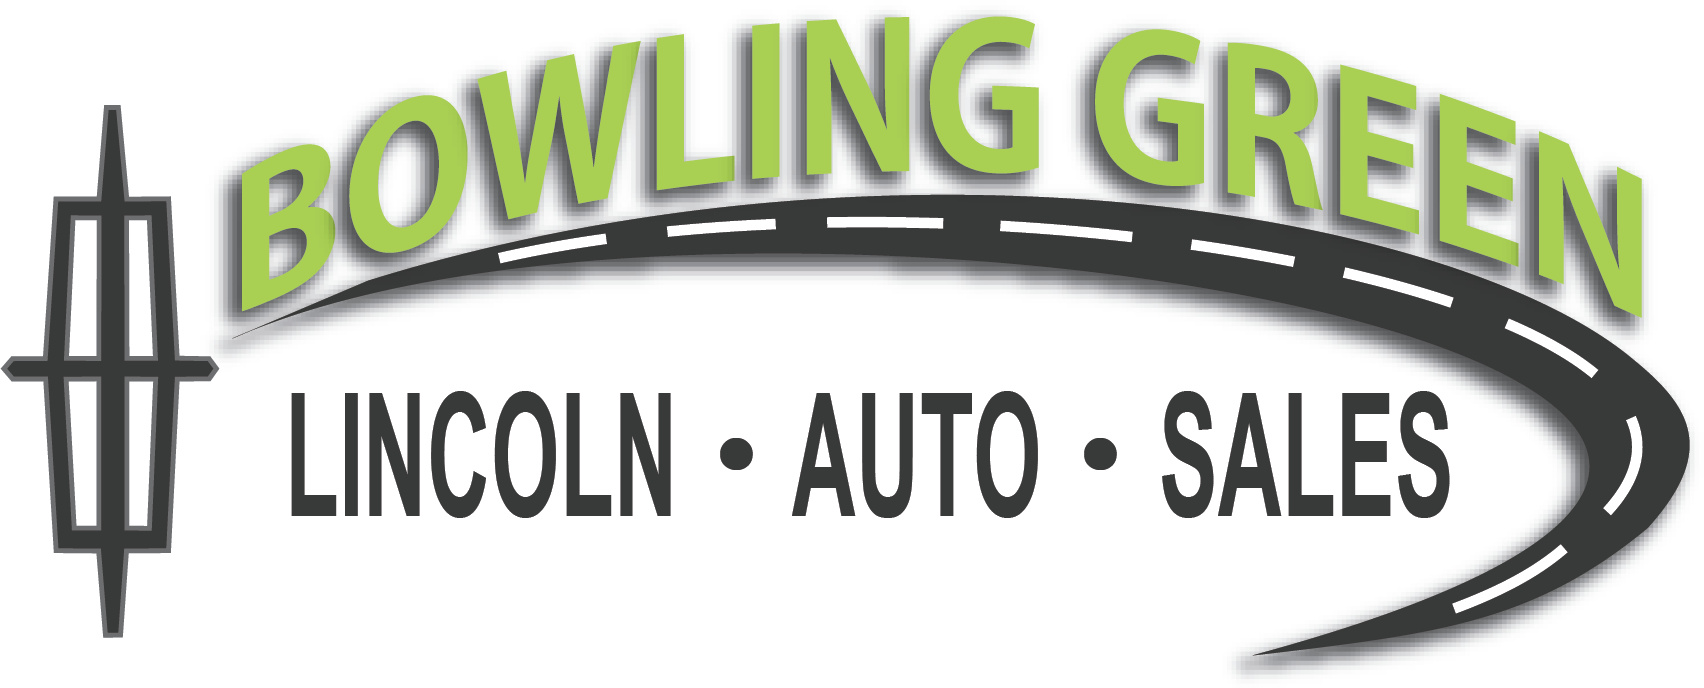 Bowling Green Lincoln Auto Sales